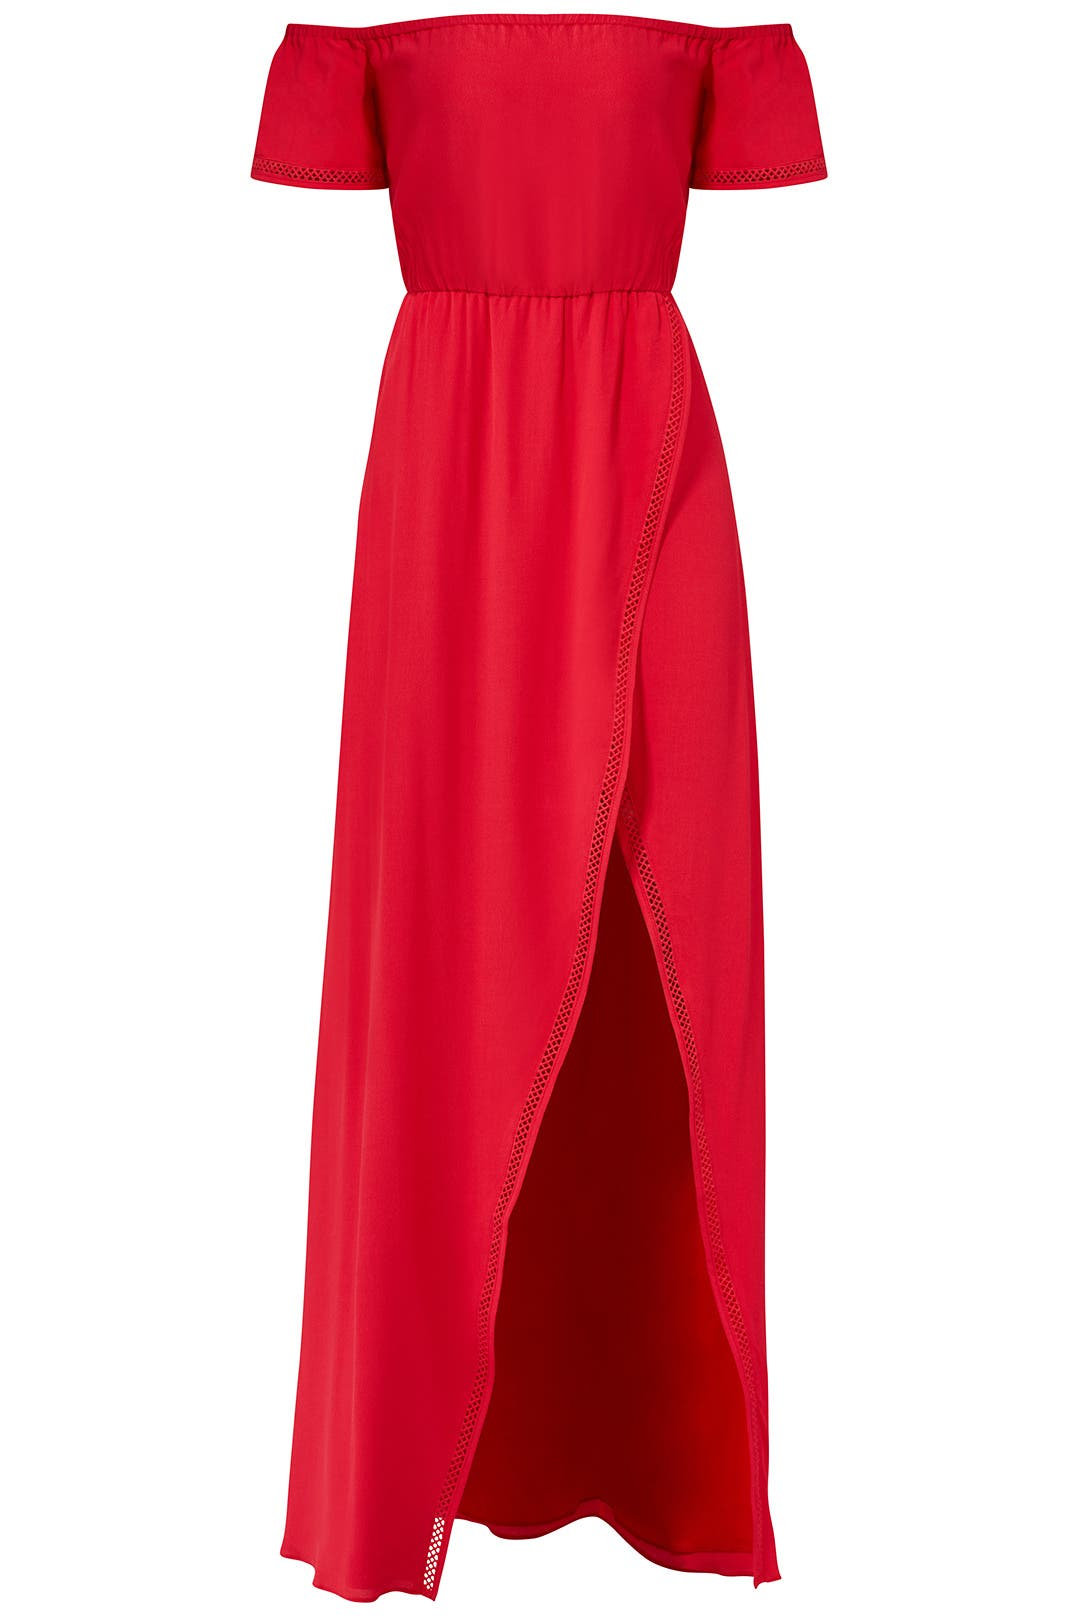 Red Sweetheart Off Shoulder Gown by Badgley Mischka for $95 - $105 ...